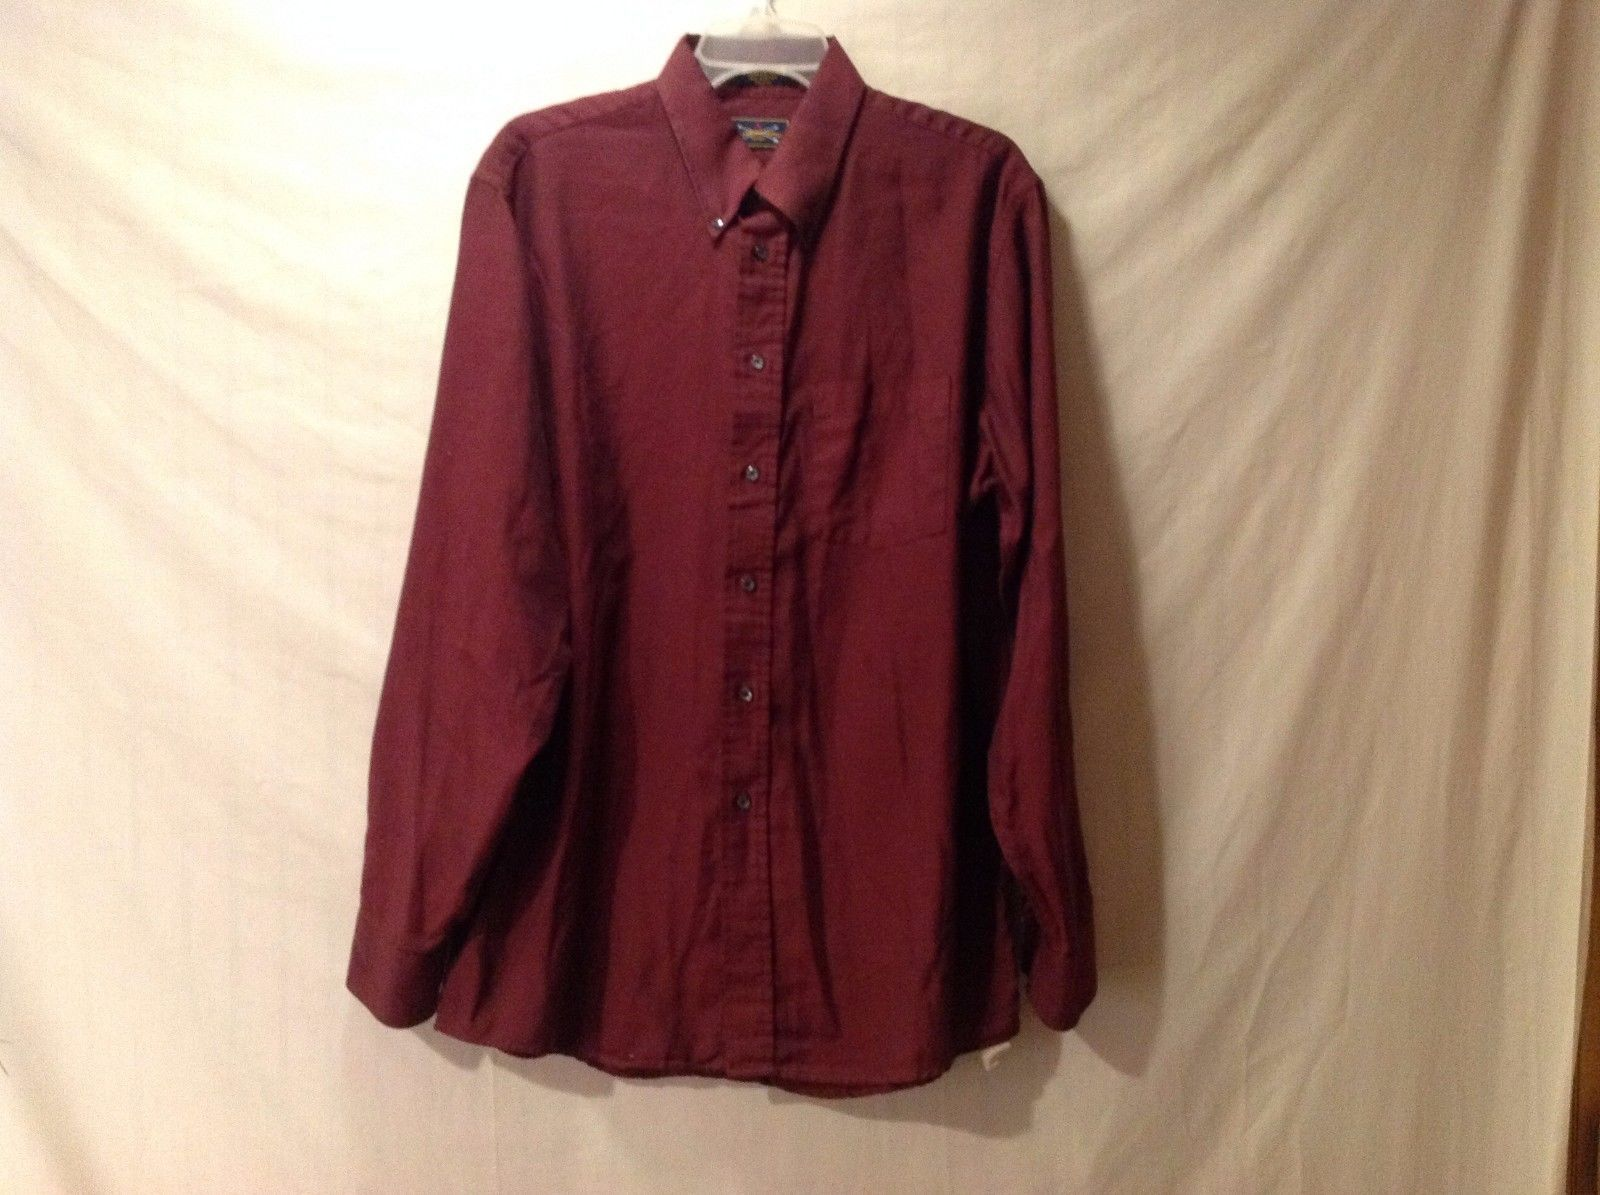 Preowned Excellent Condition Mens Wine Colored Dress Shirt The Arrow Company